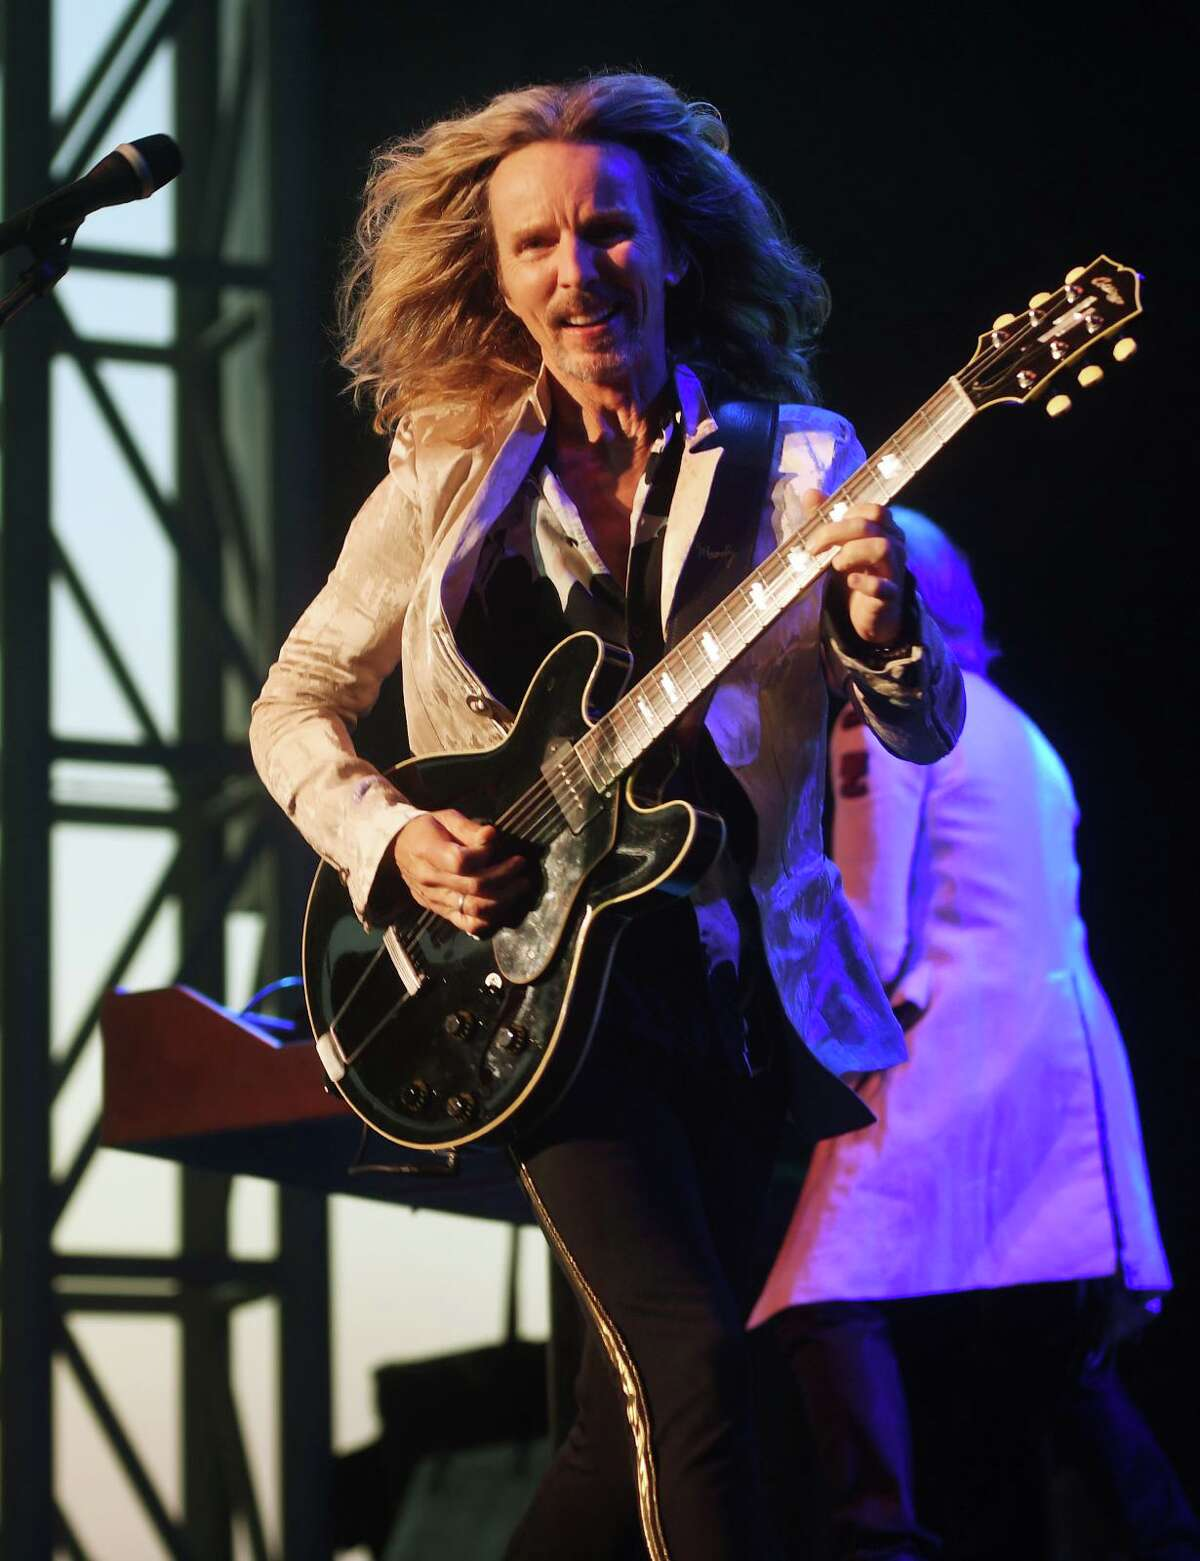 Tommy Shaw of the classic rock band Styx performs on the opening night of the new Hartford HealthCare Amphitheater in Bridgeport on Wednesday Below left, Meriden friends, from left, Brian Daniels, Tracy Ivers, and Margarita Grignano take a selfie in front of the stage on opening night of the Hartford HealthCare Amphitheater in Bridgeport.